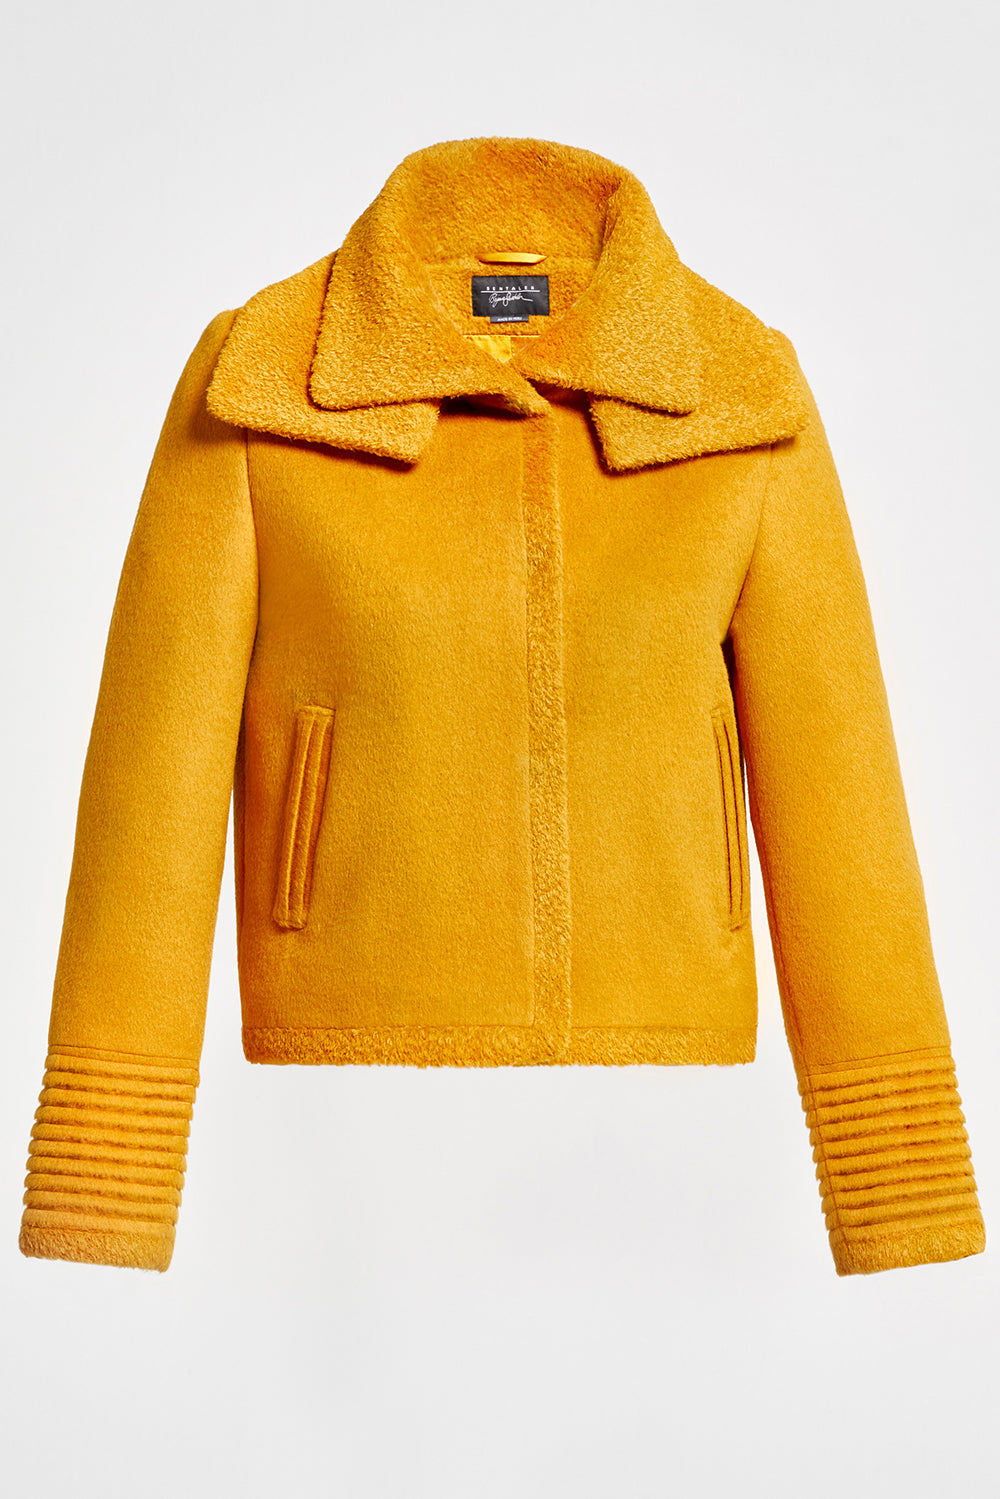 Sentaler Moto Jacket with Signature Double Collar featured in Baby Alpaca and available in Tuscan Sun. Seen off model.